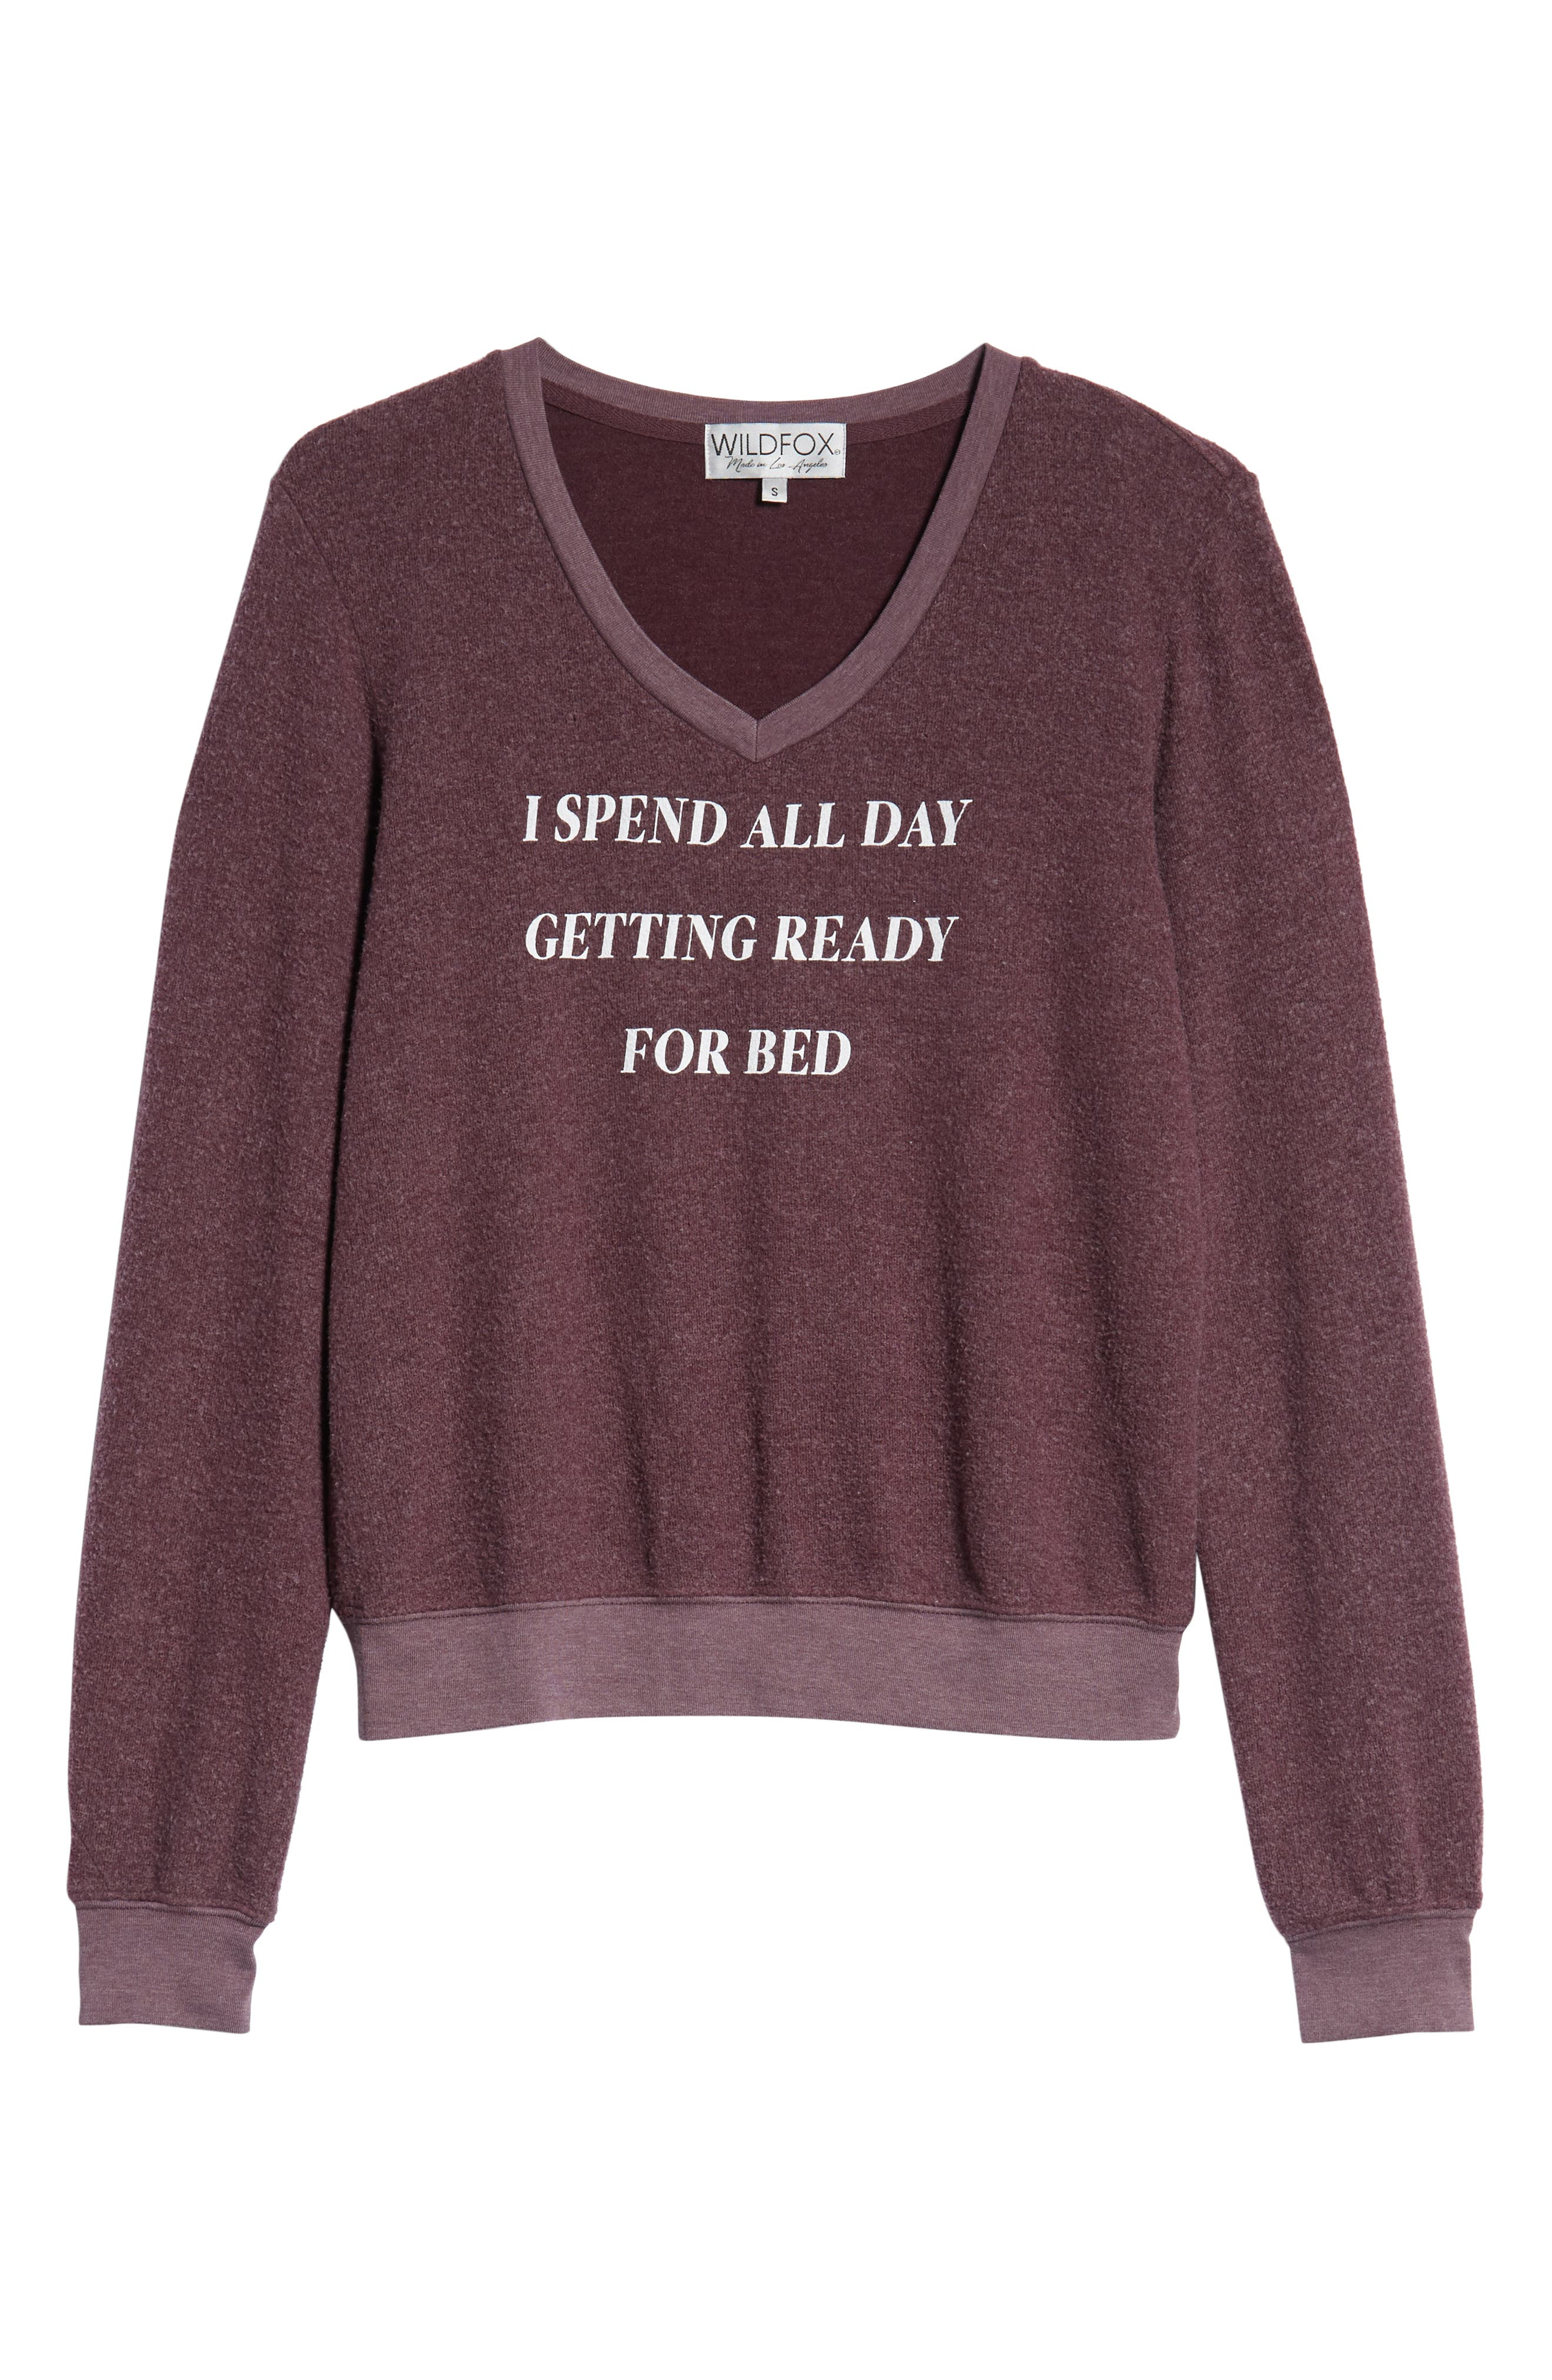 Ready For Bed Baggy Beach Jumper Sweatshirt,                             Alternate thumbnail 6, color,                             CRUSHED BERRY